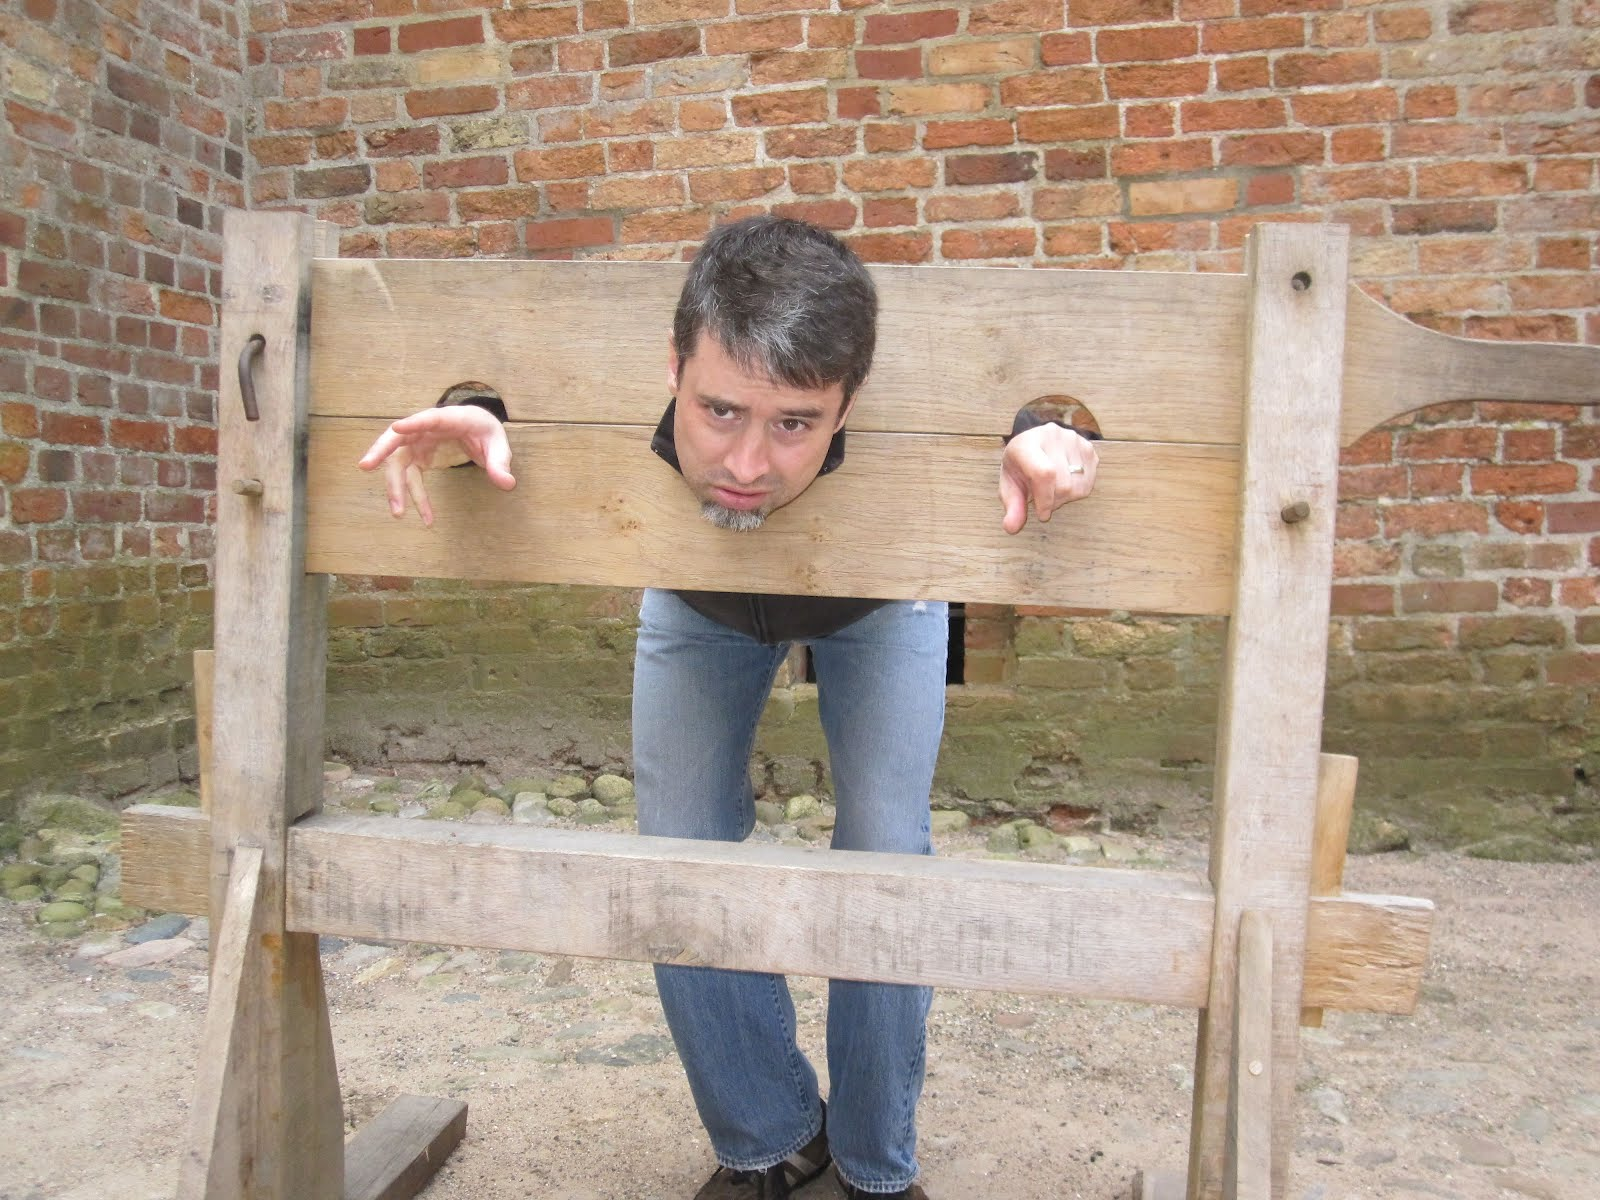 how to build a pillory